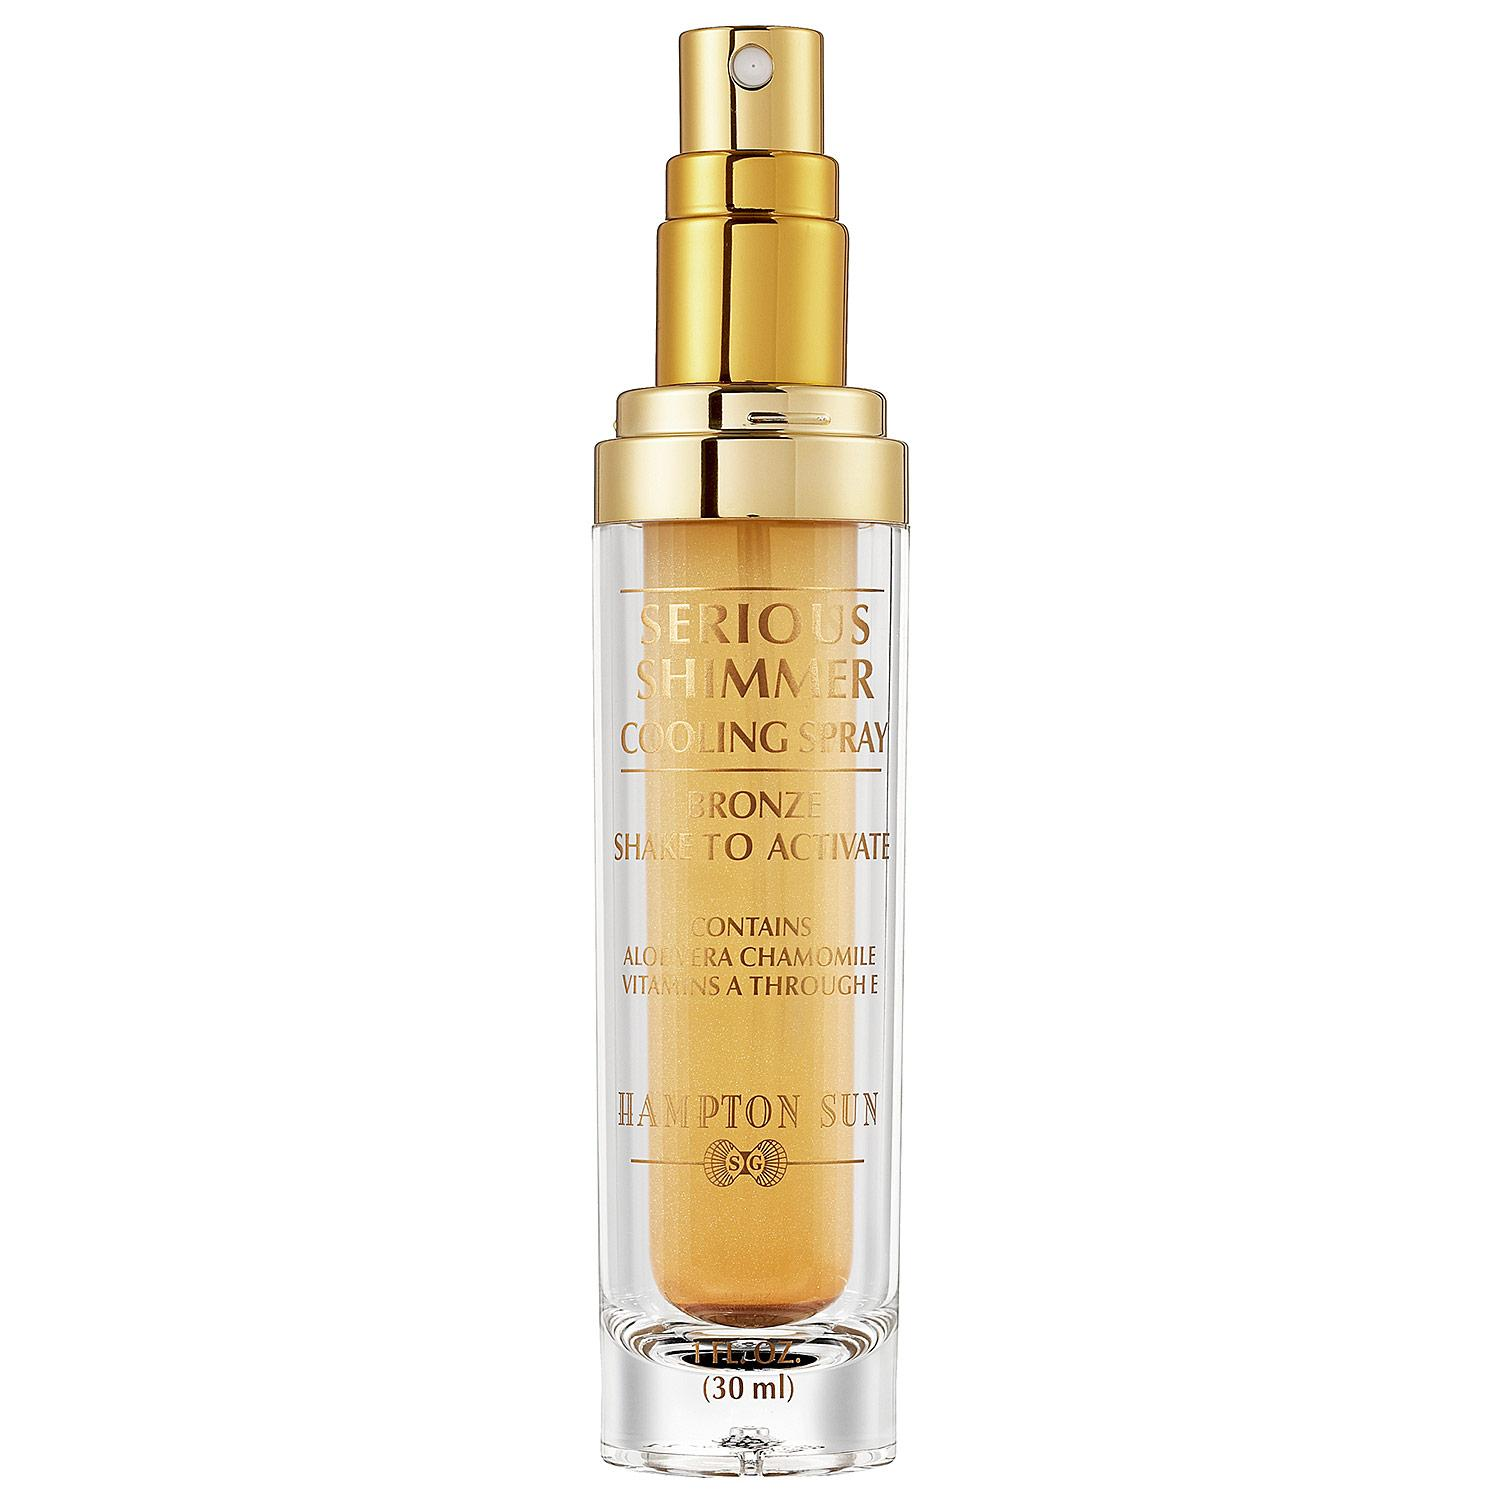 Serious Shimmer Cooling Spray - Bronze